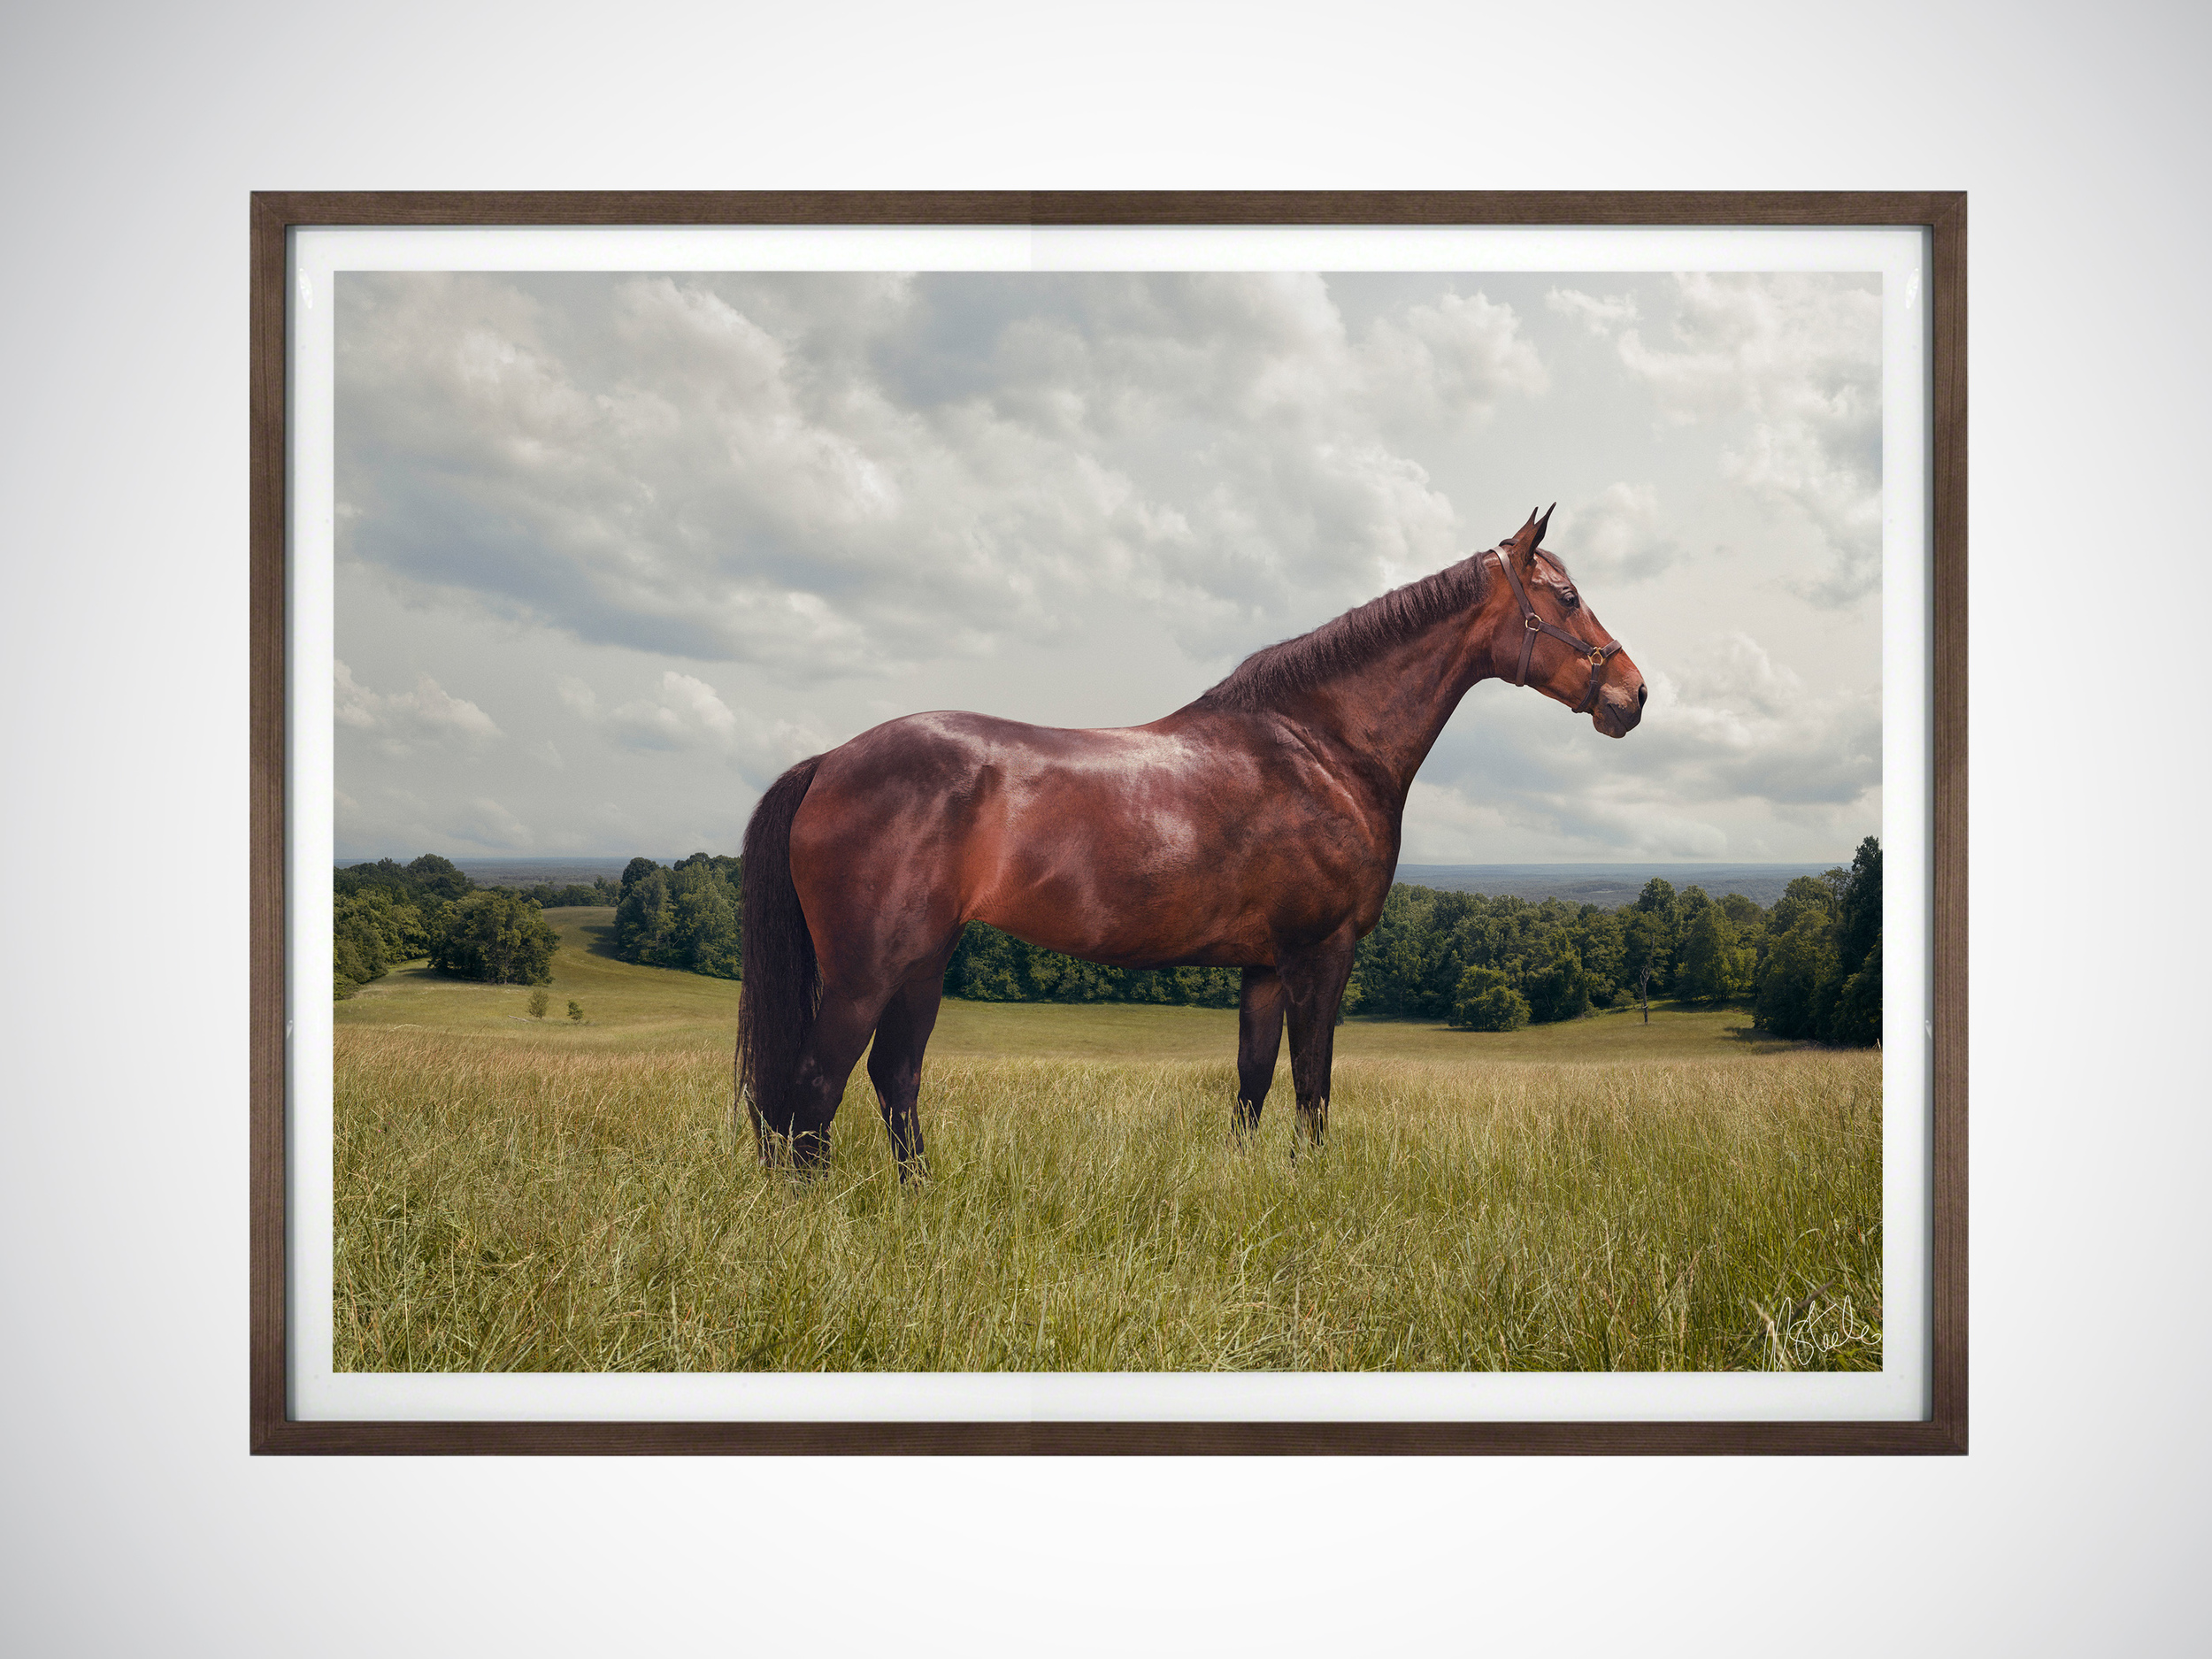 Commissioned Artwork - For his Equine Art, Leon is seeking commission from horse owners throughout the world. It is his ambition to be granted access to the industry's most prized horses as well as those privately owned to produce unique and exquisite portraits for private collectors.Having trained in the analogue world of film and chemicals and worked through the industry's seismic shift to a digitised medium, Leon considers that he is fortunate in having to straddle and master both worlds.Gained through years of still life discipline, his precise methods, deliberate decision making, and meticulous attention to detail have given Leon an aesthetic to his artwork that fewer and fewer in his field can rival. His use of newer technologies only enhances an already consummate craft.